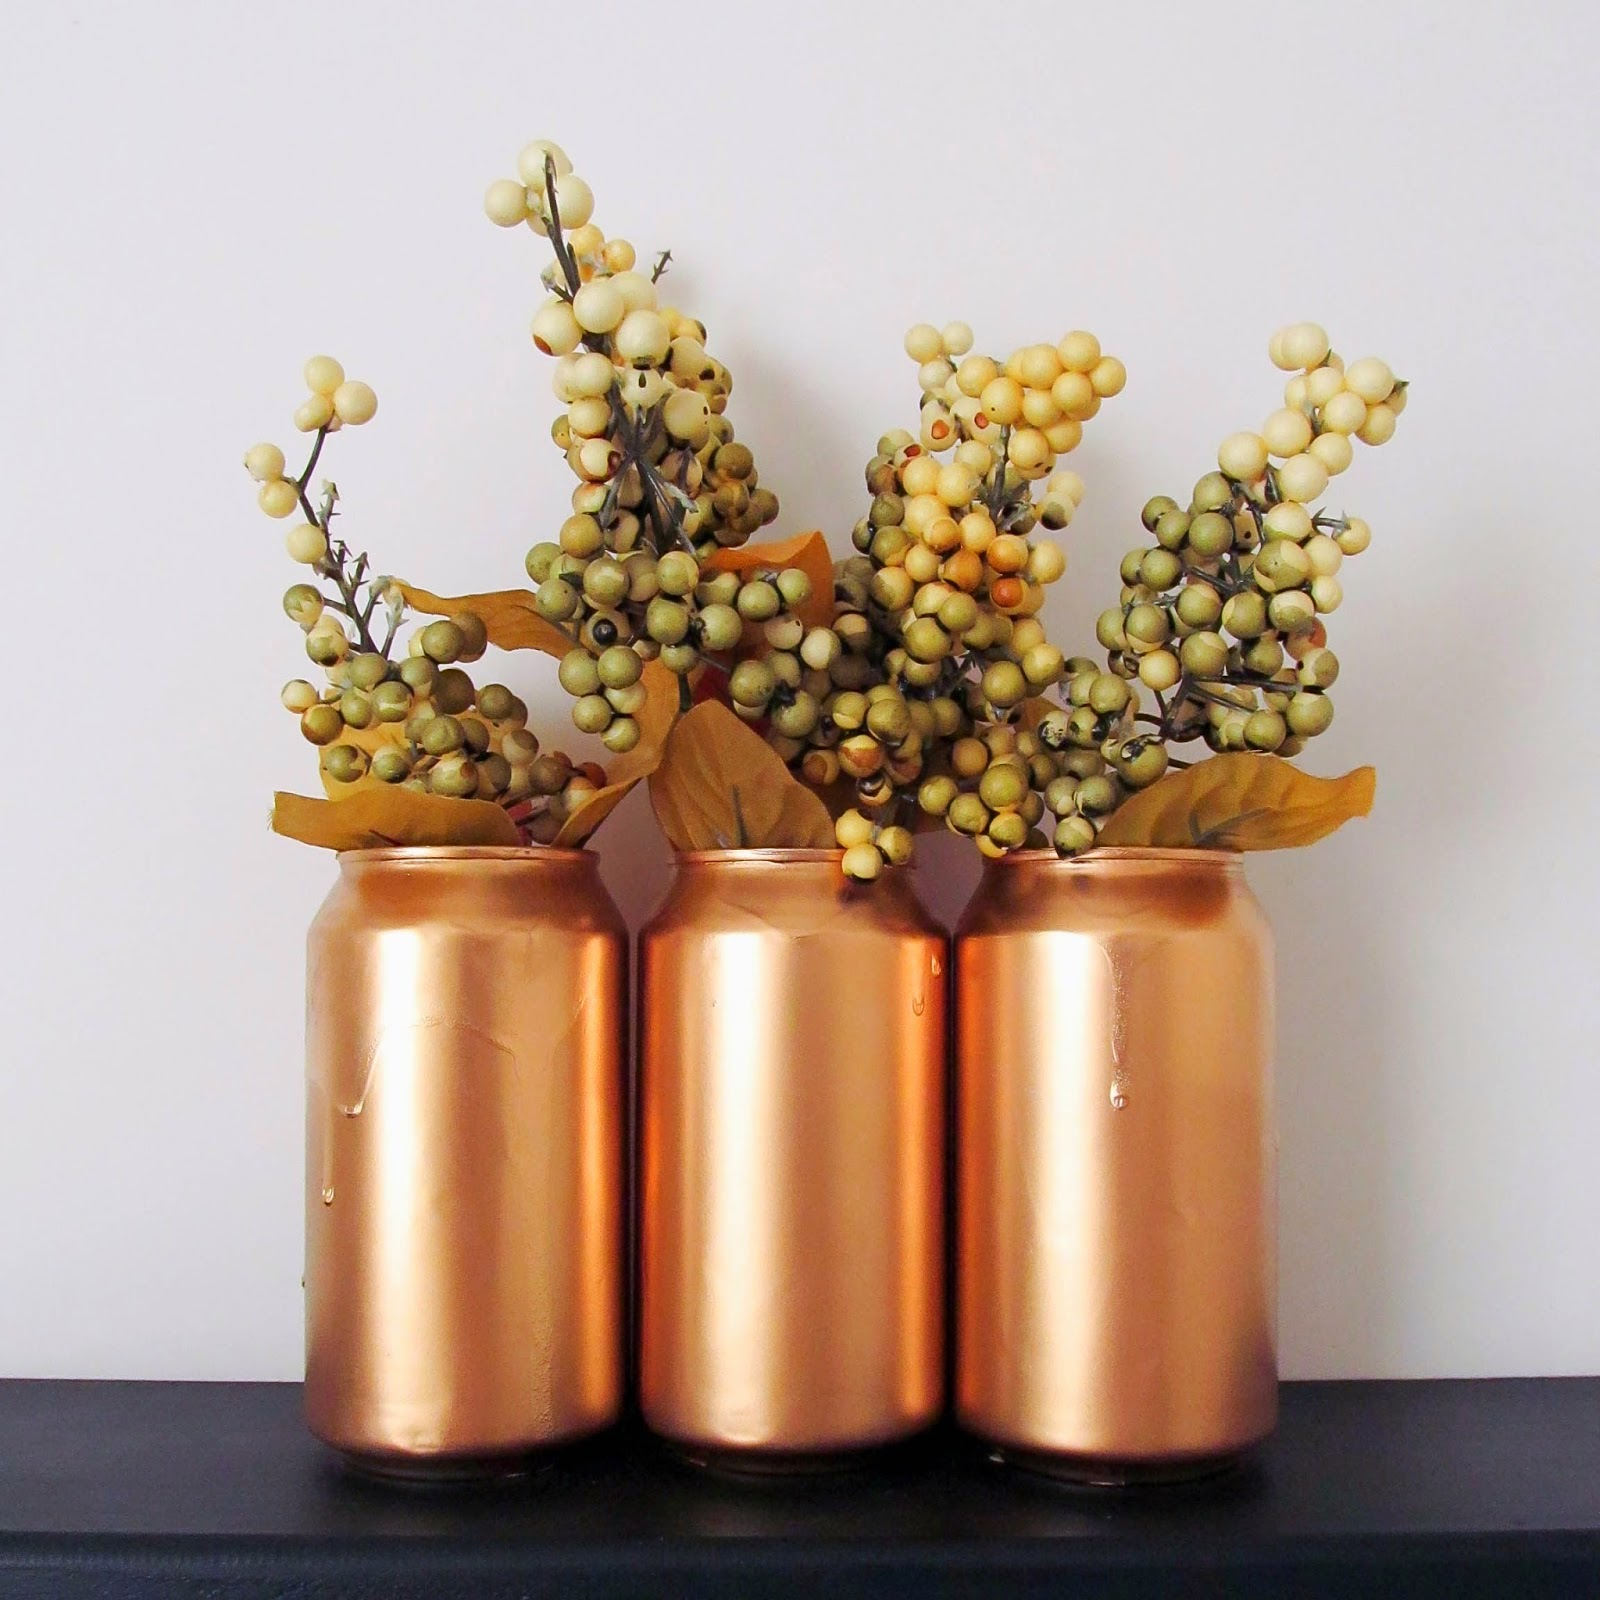 http://muslinandmerlot.blogspot.com/2014/05/soda-can-vase-or-cup.html